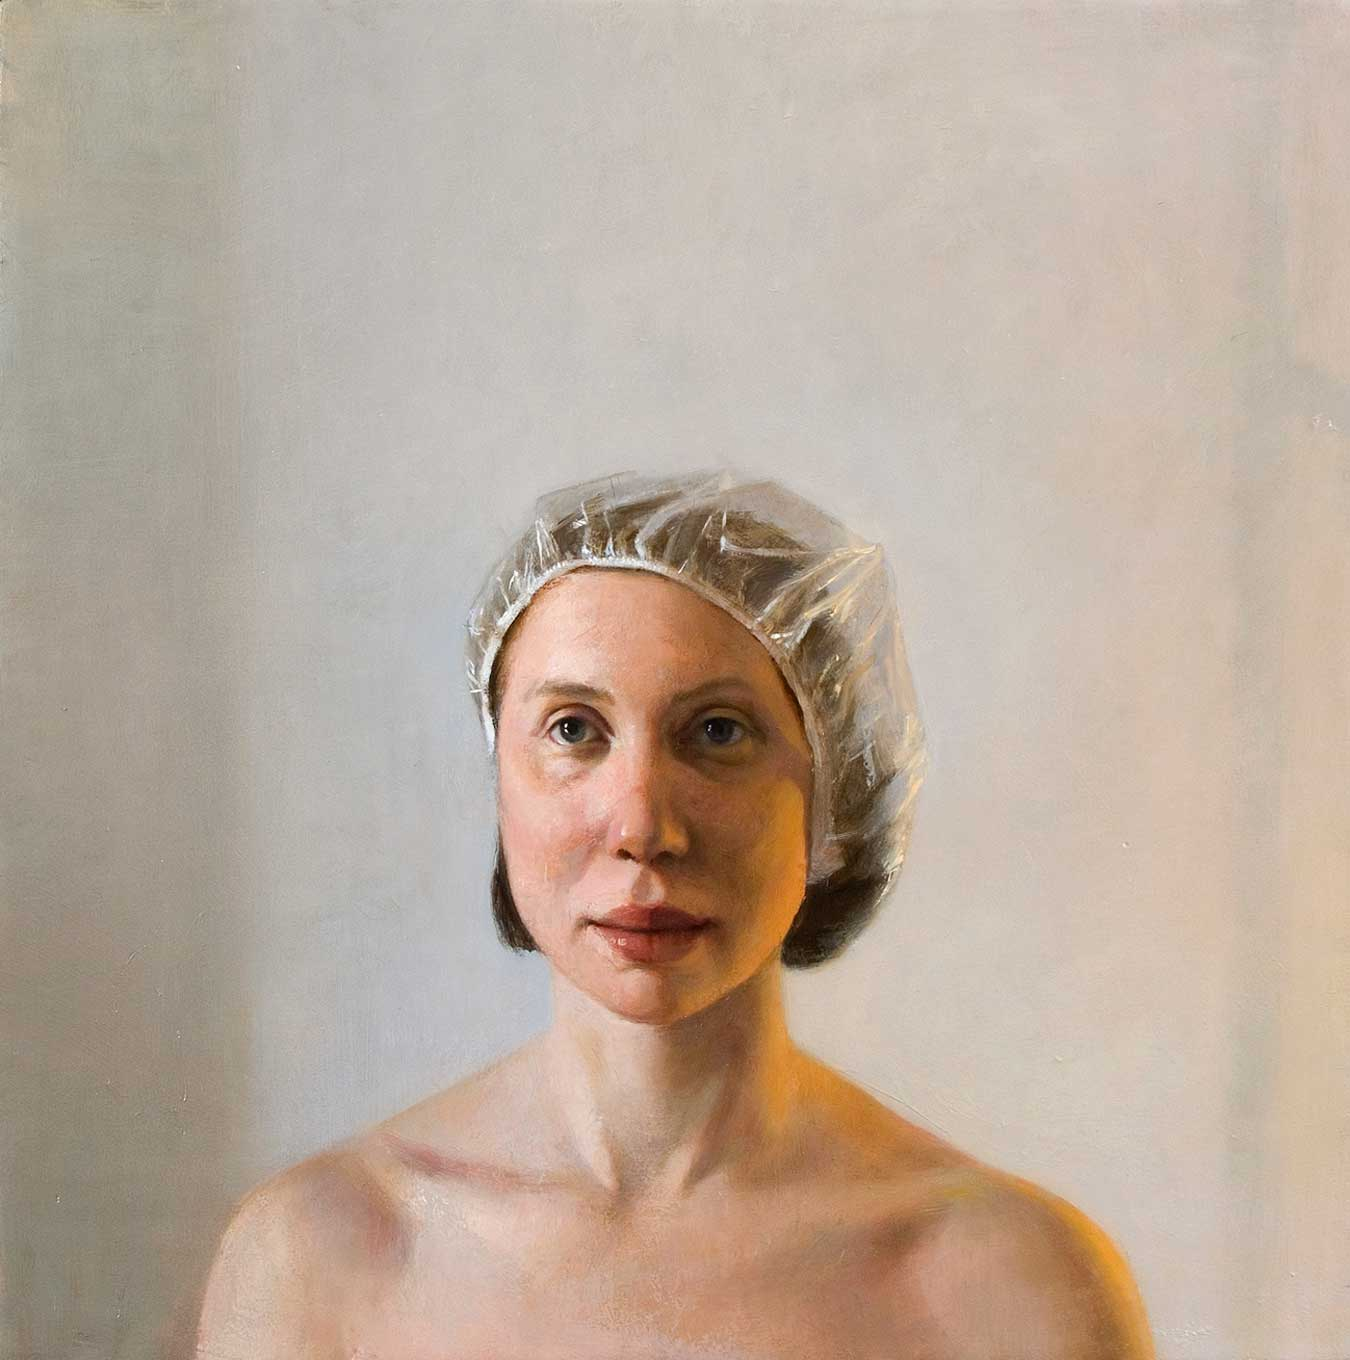 Emil Robinson, Showered, 2007, oil on panel, 24 x 24 inches (courtesy of the artist)